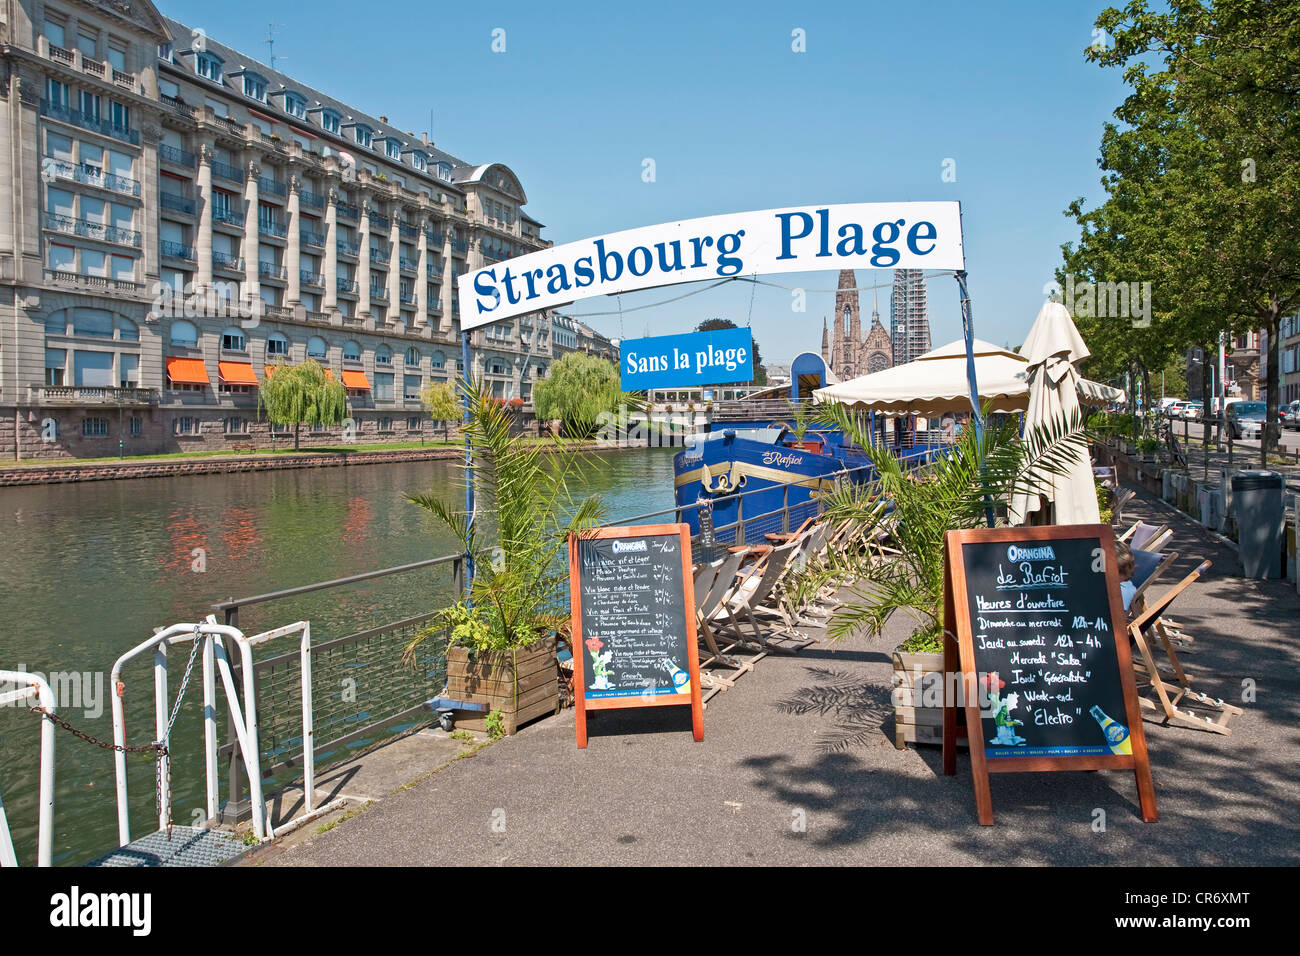 Strasbourg Plage sans la plage or Beach without beach on the banks of the Ill, Strasbourg, Alsace, France, Europe - Stock Image